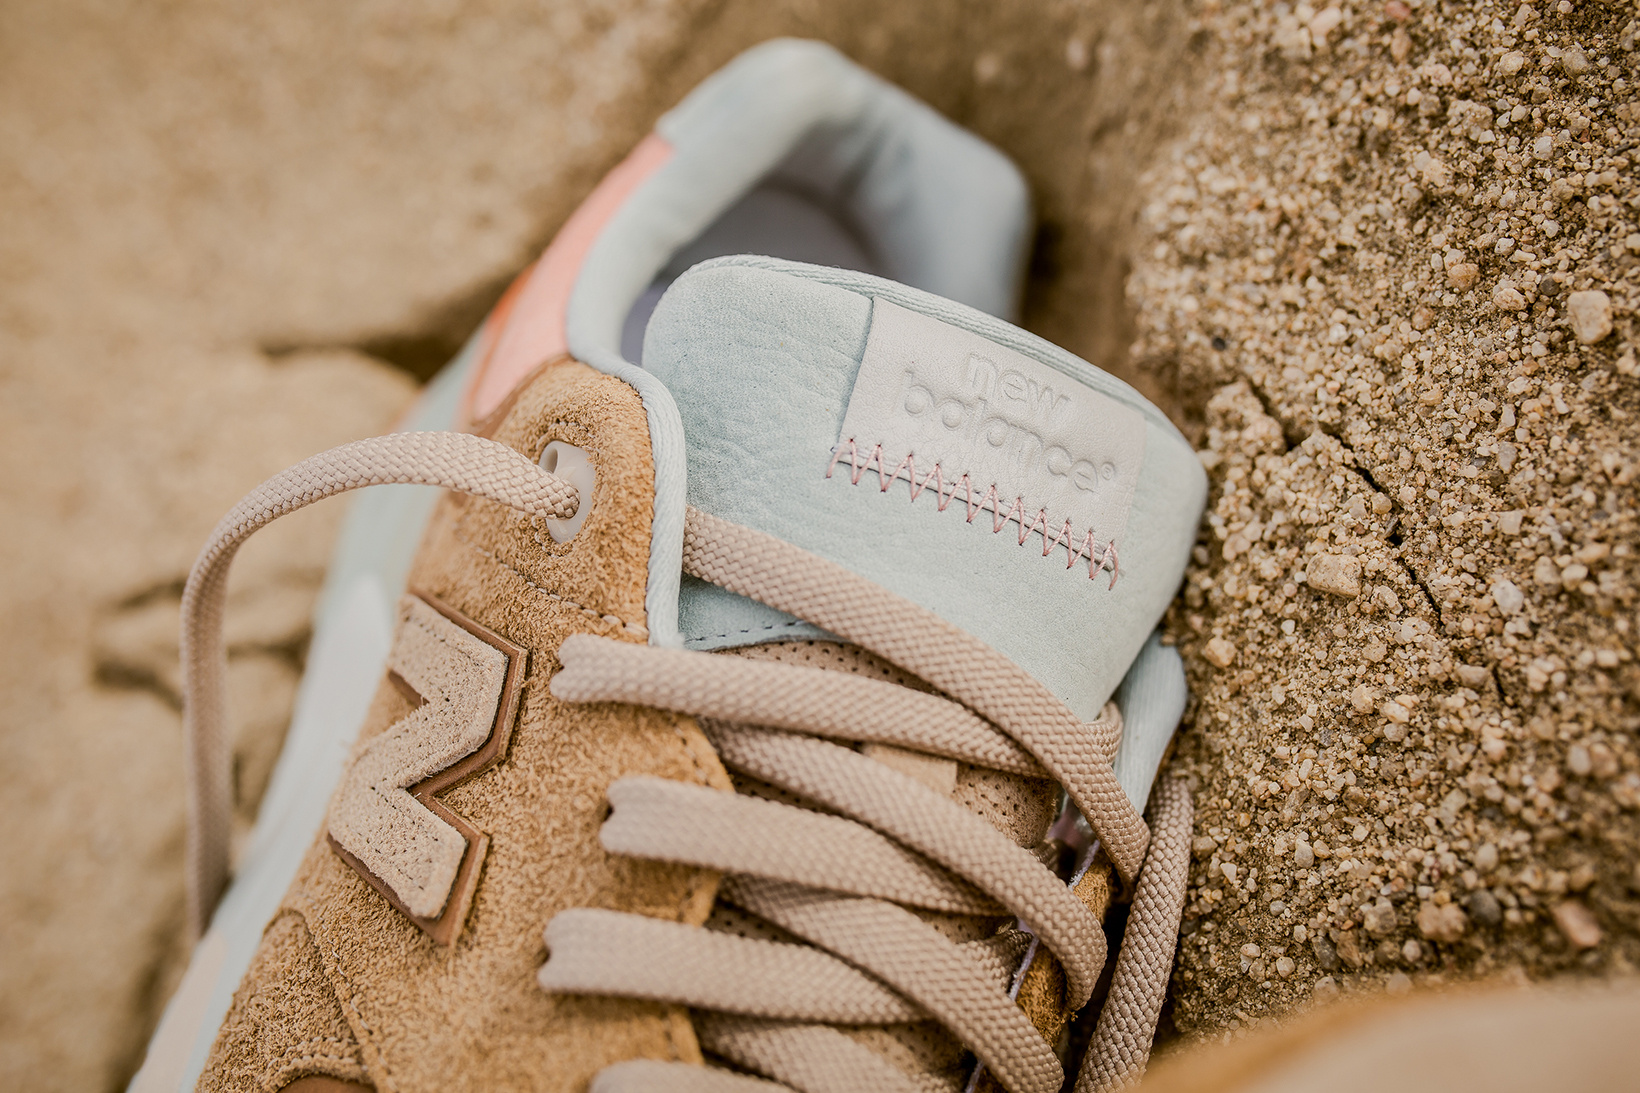 packer-shoes-new-balance-999-cml-5